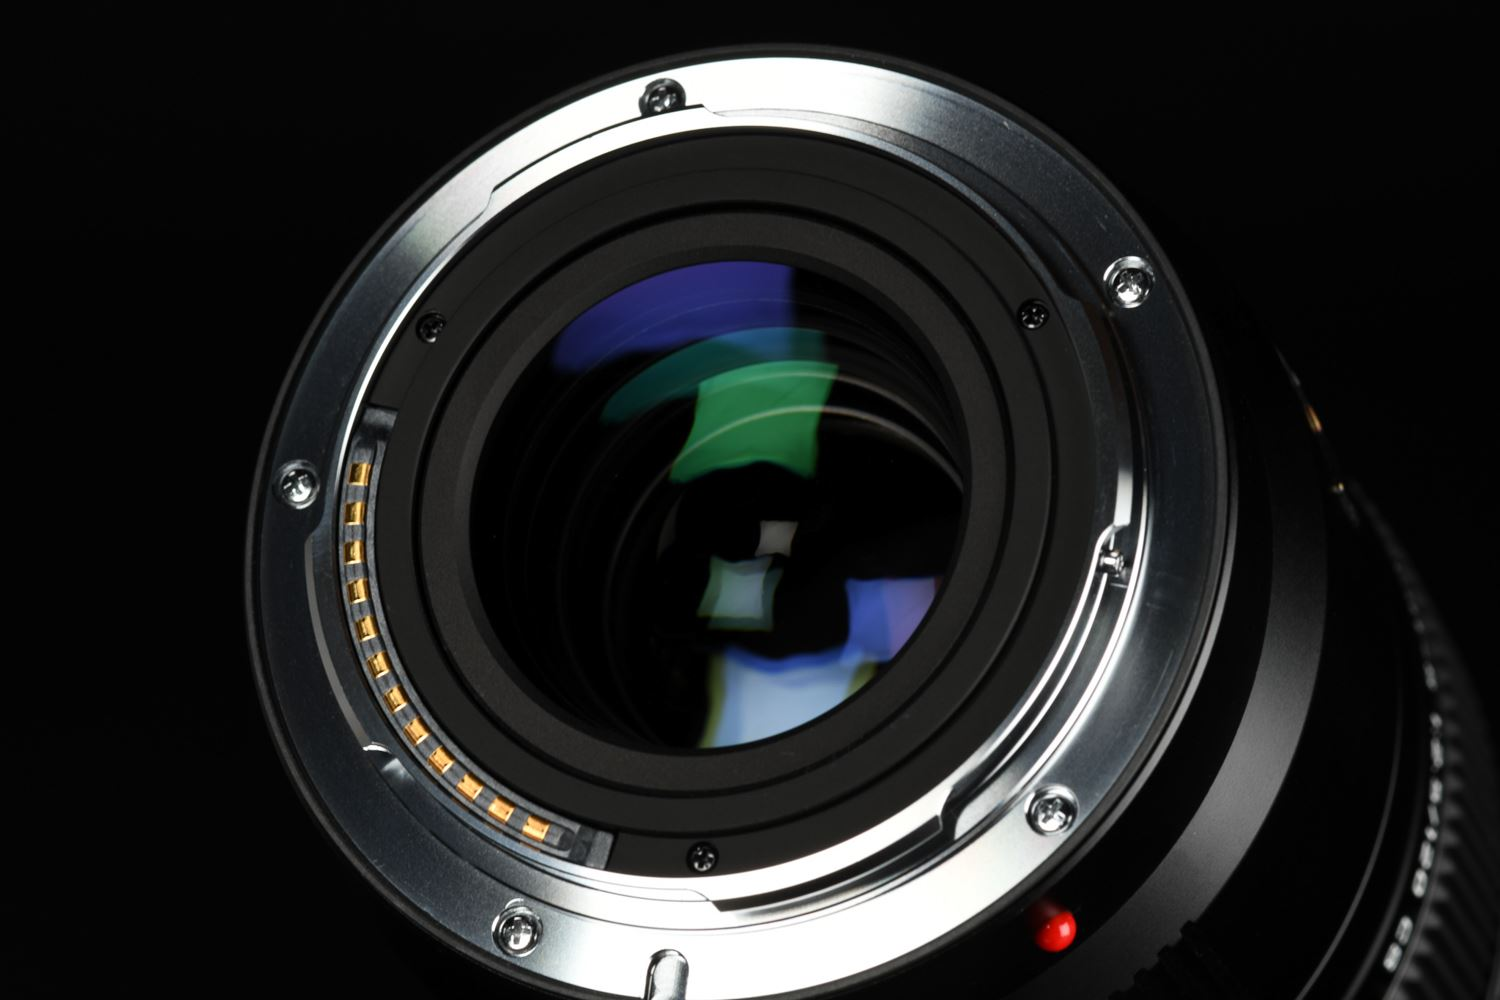 Picture of Leica APO-Macro-Summarit-S 120mm f/2.5 CS